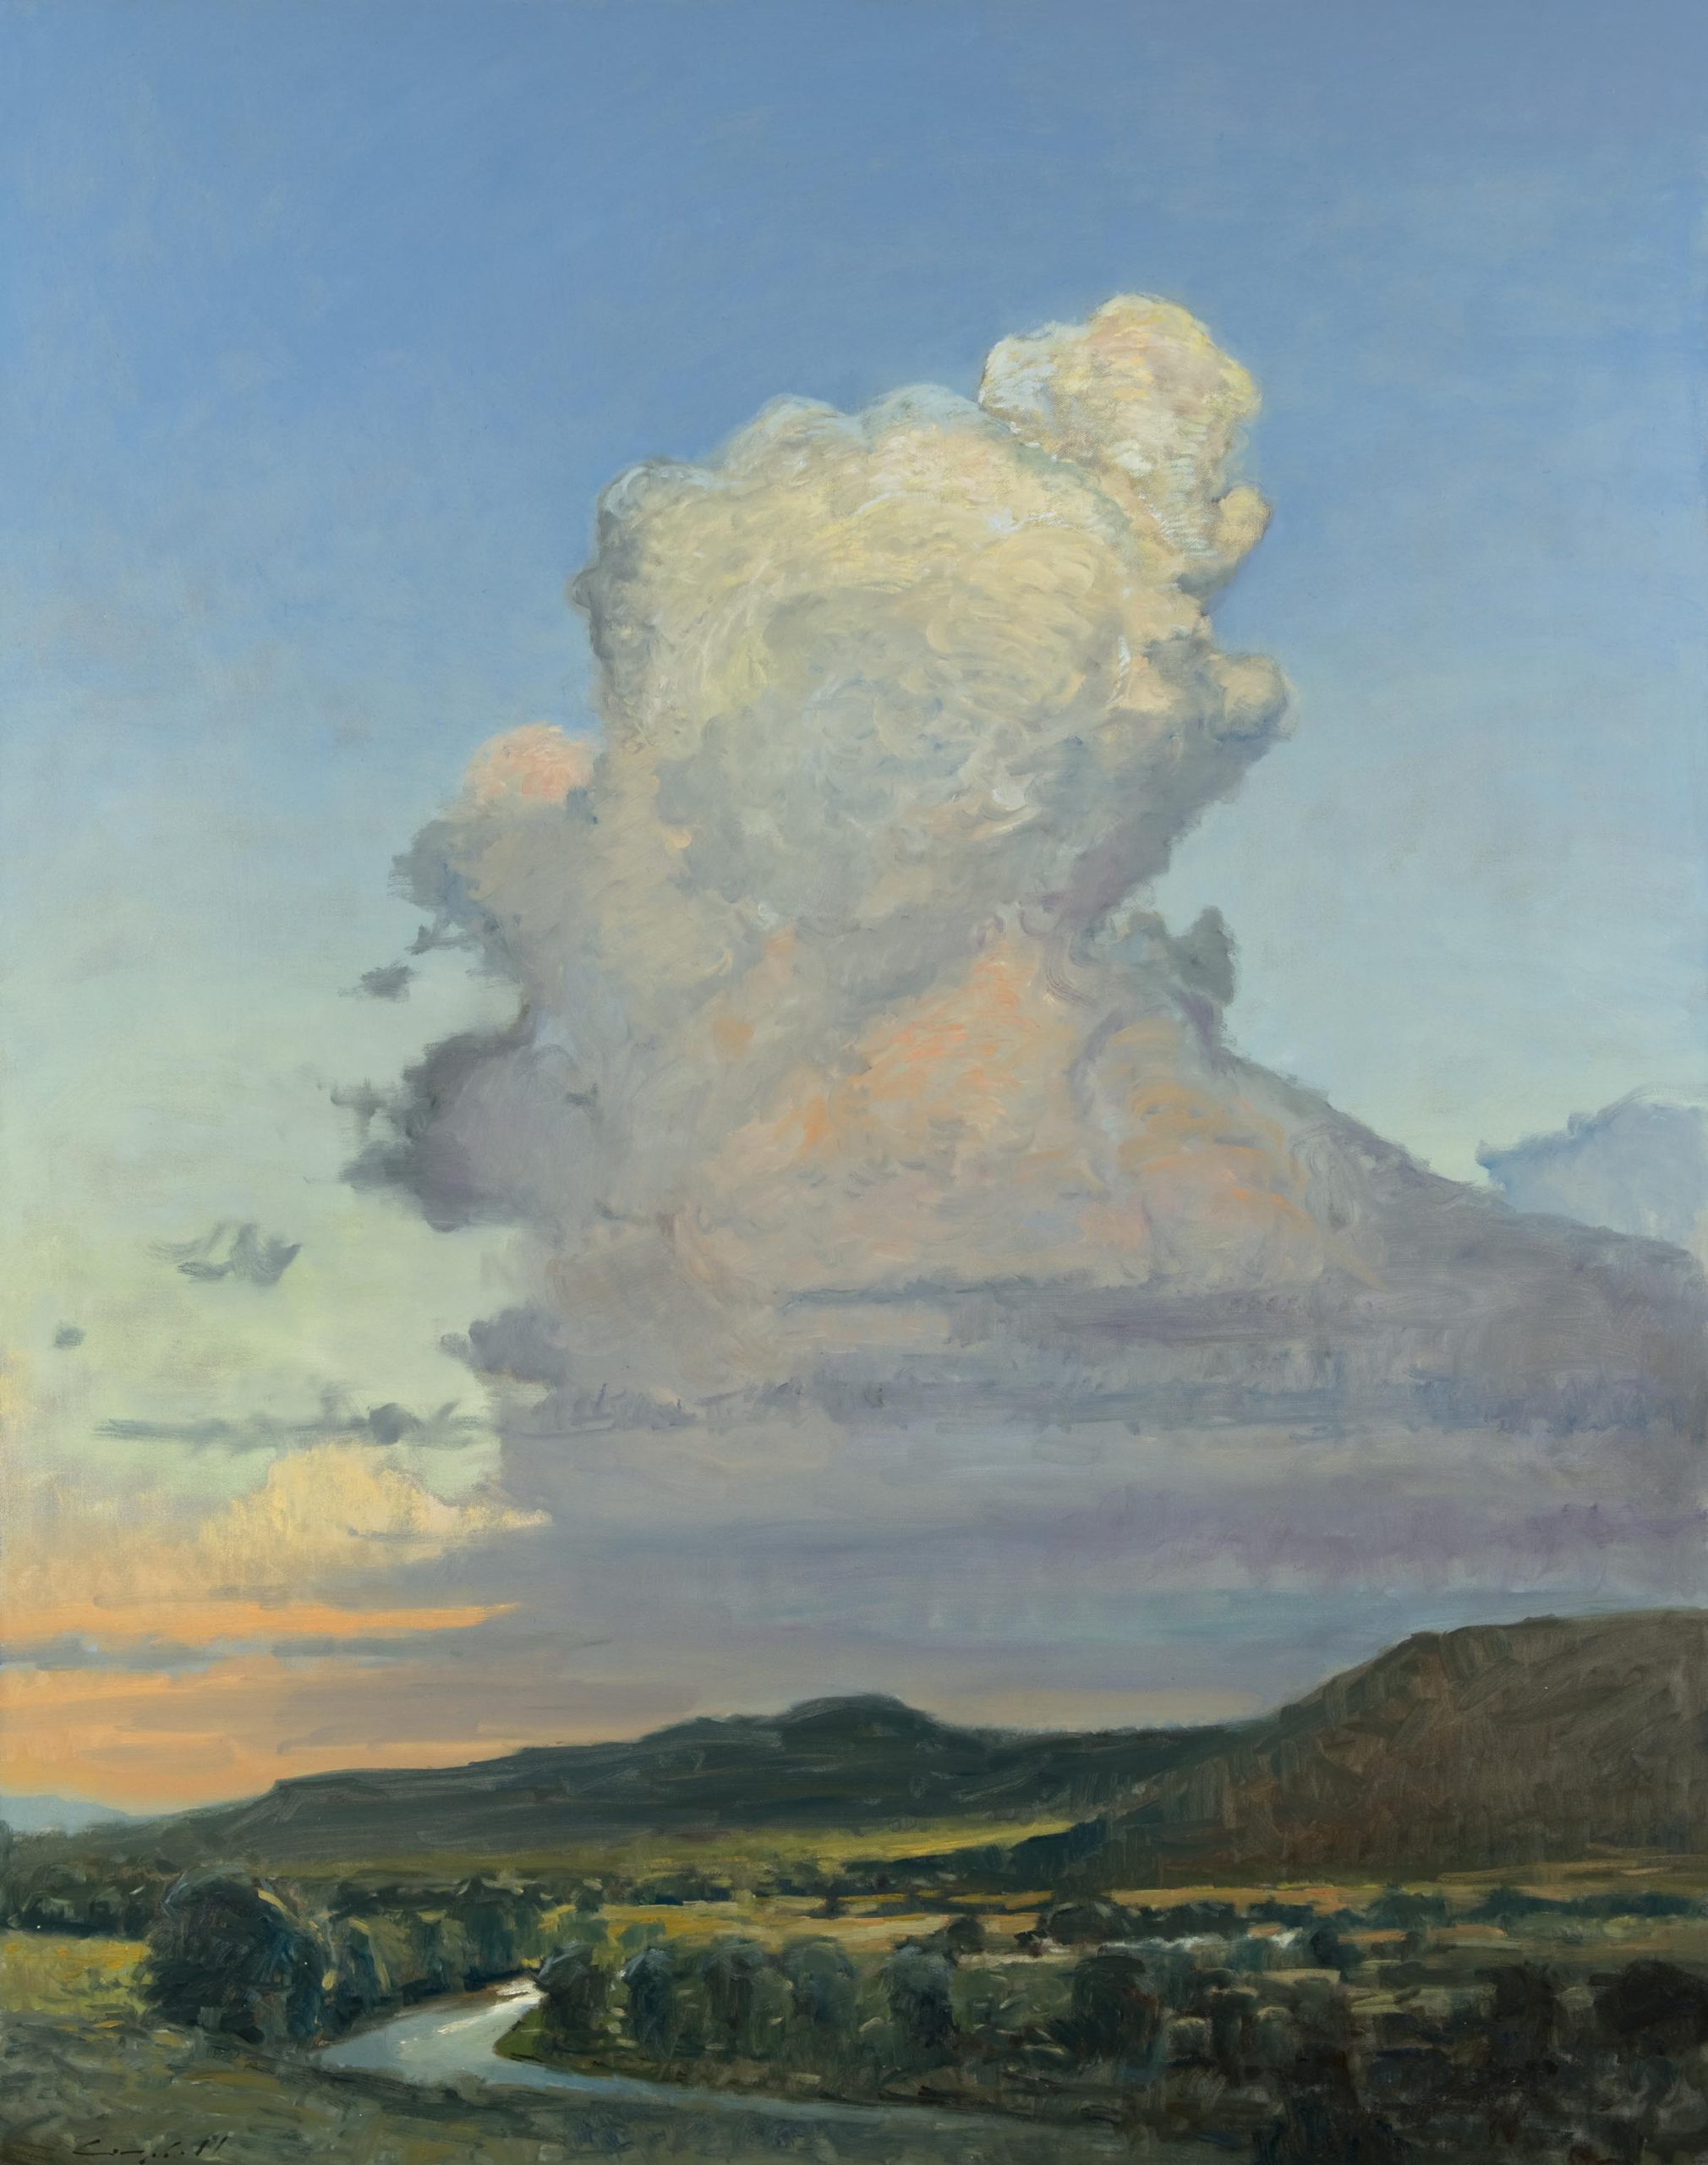 Peter Campbell - Clouds Over the Roaring Fork